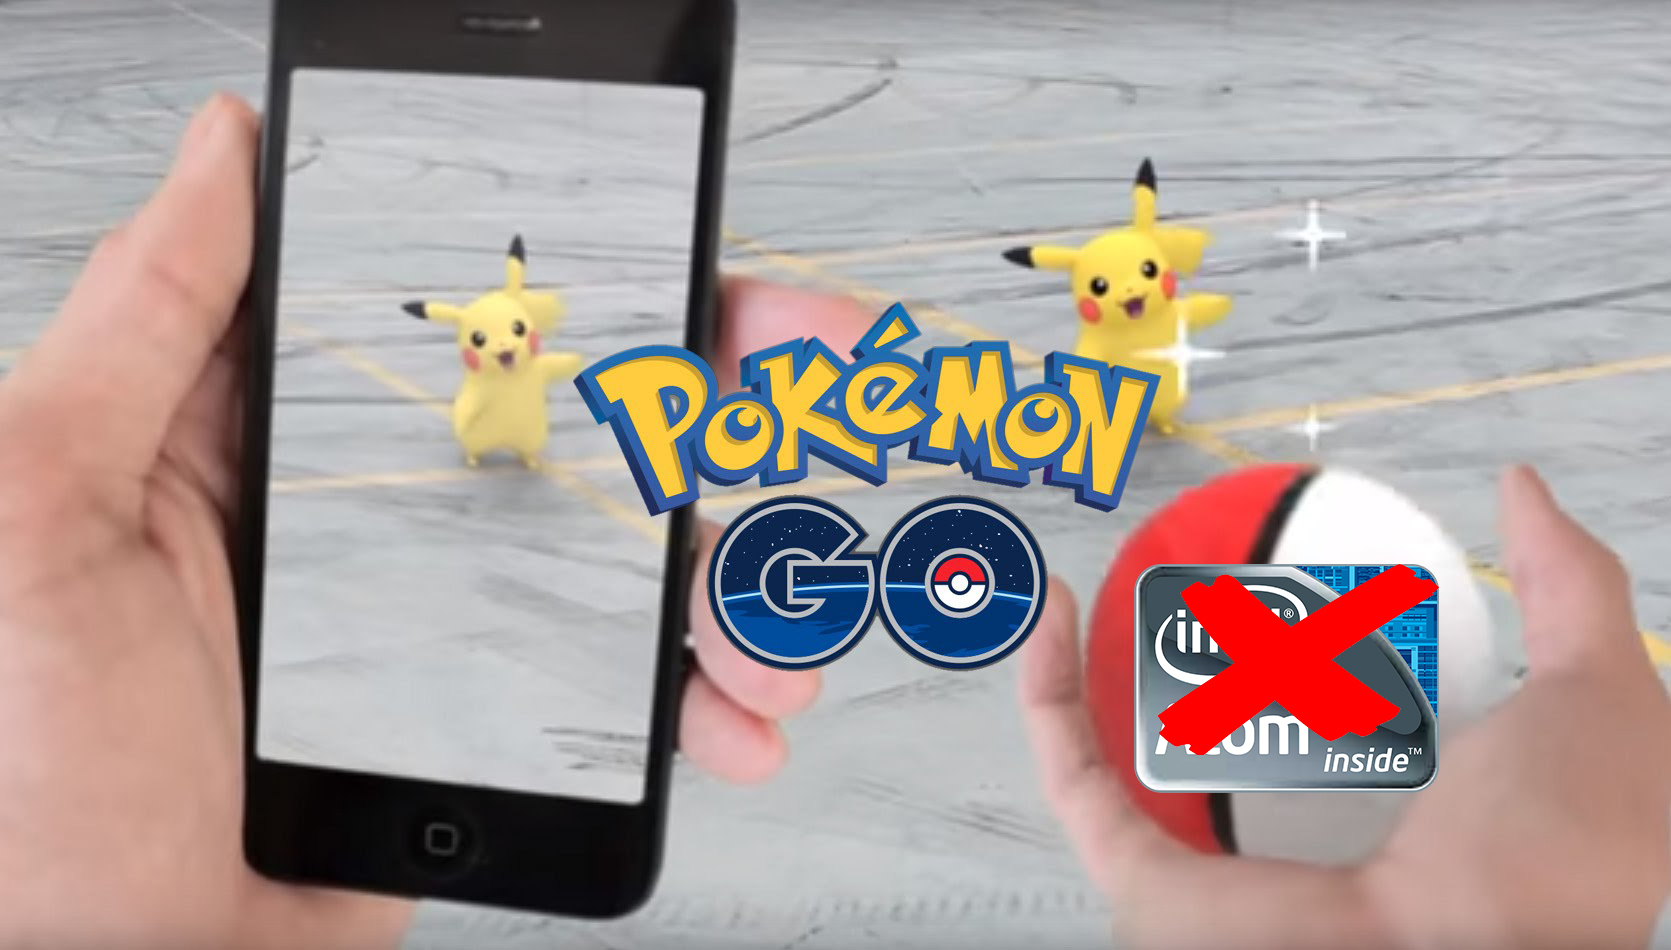 intel-chipset-smartphone-cant-play-pokemon-go-002 copy